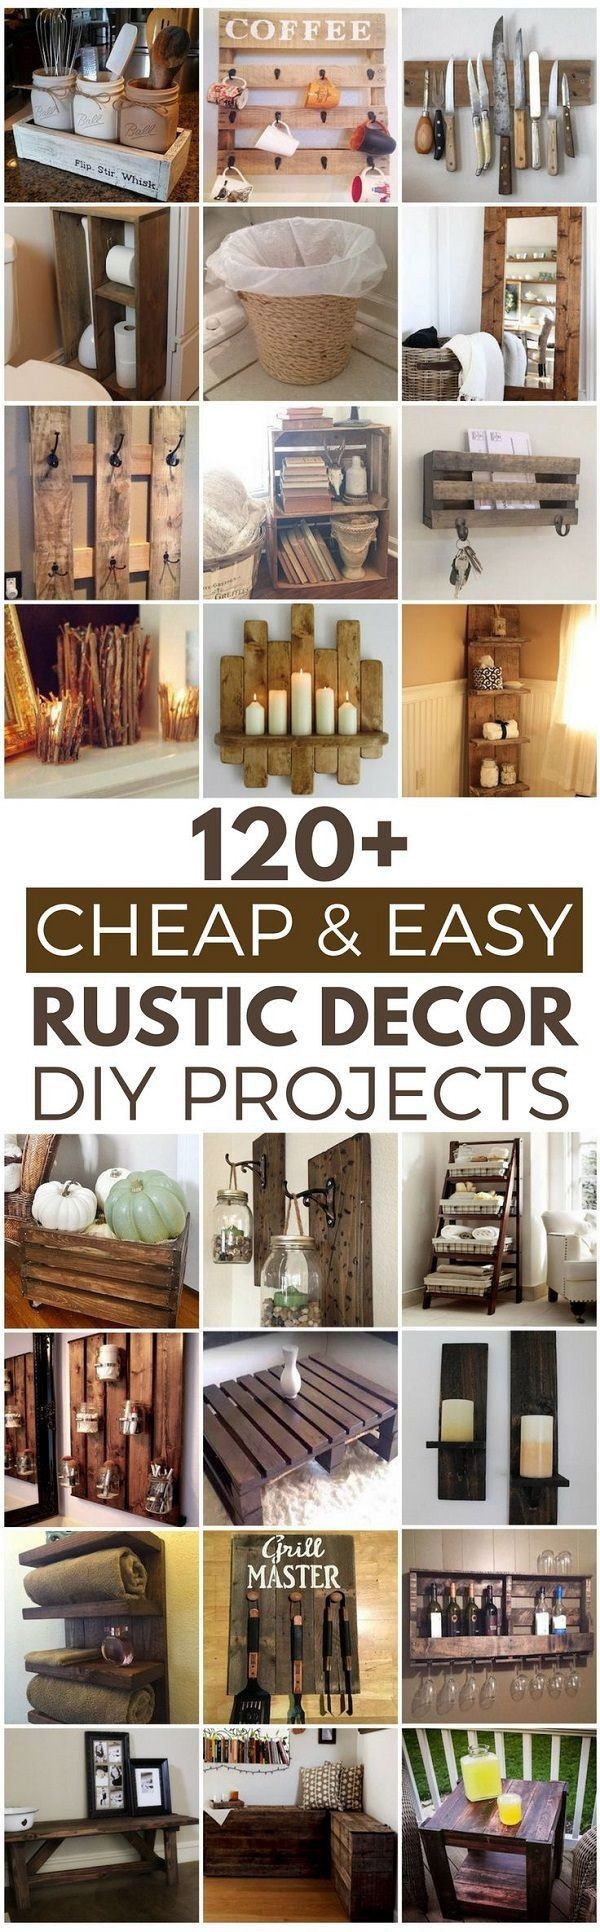 Diy Vase Decor Of Www Pinterest Home Decor New Wall Decal Luxury 1 Kirkland Wall Decor In Www Pinterest Home Decor New Easy Home Decorating Unique 15 Cheap and Easy Diy Vase Filler